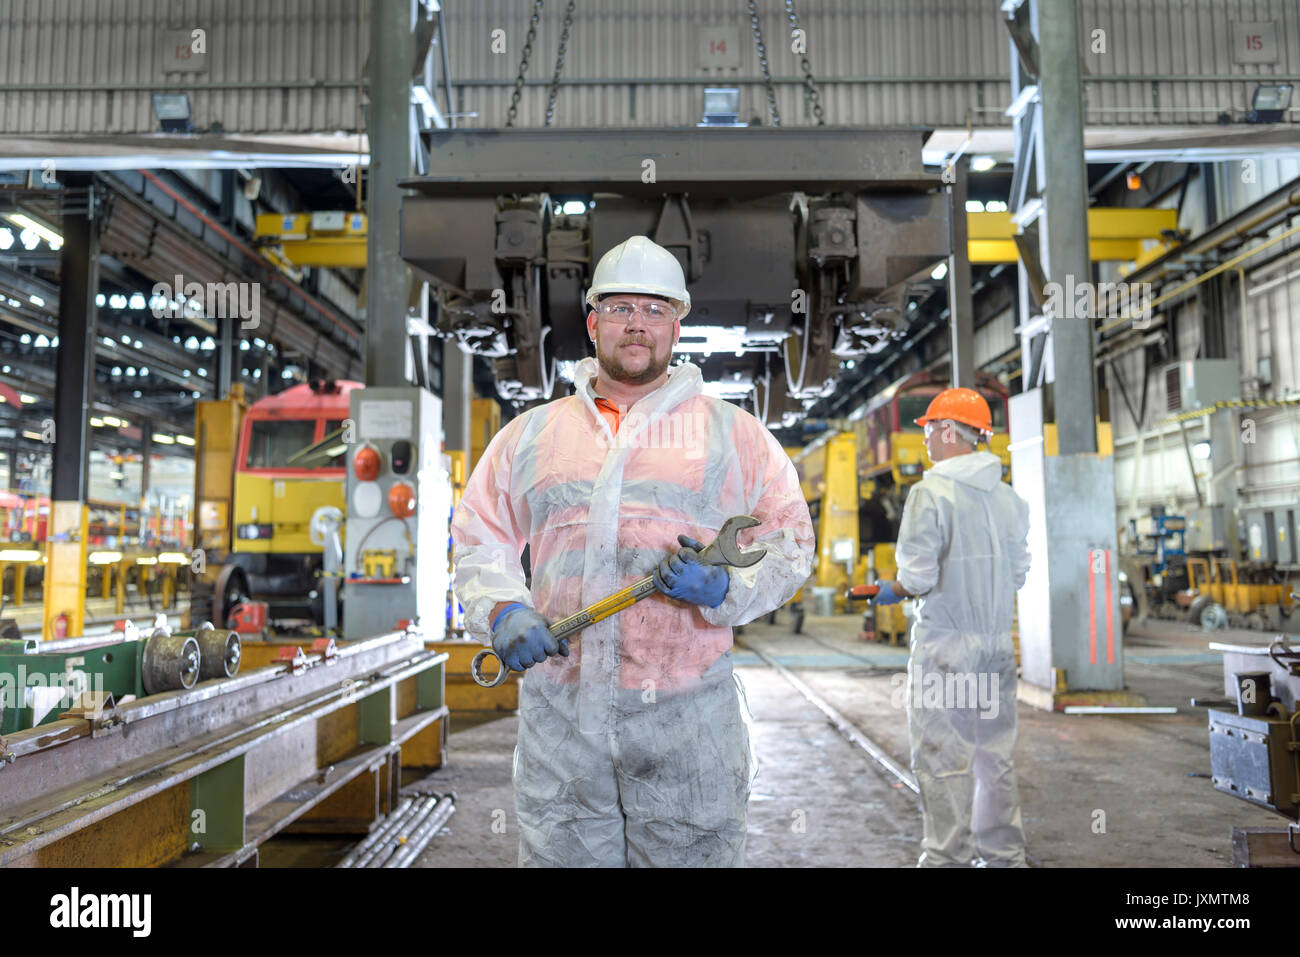 Portrait of locomotive engineer in train works - Stock Image